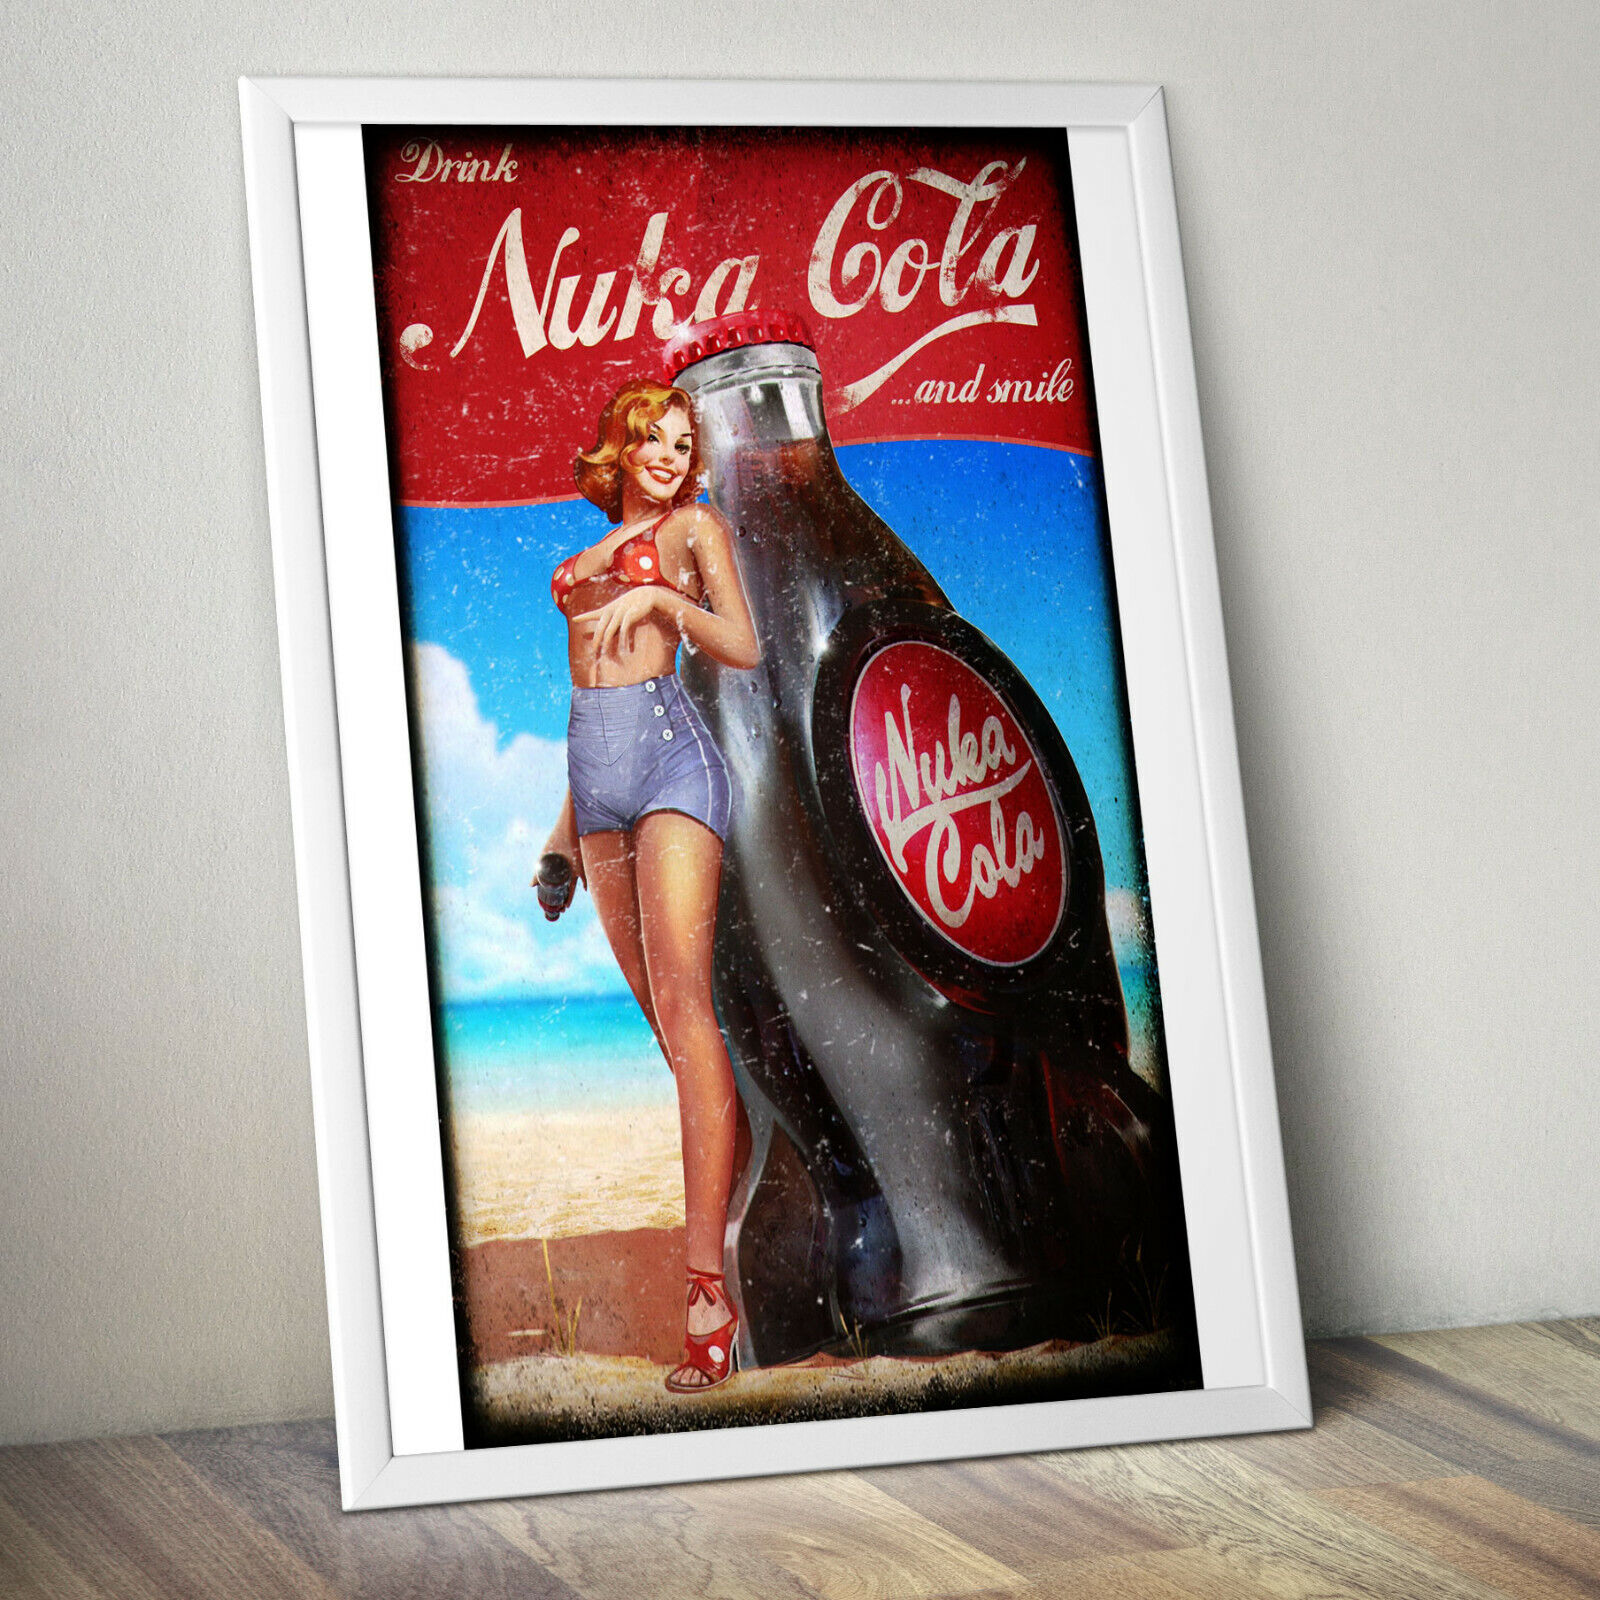 Fallout 4 Video Game Poster Canvas Premium Quality A0 A1 A2 A3 A4